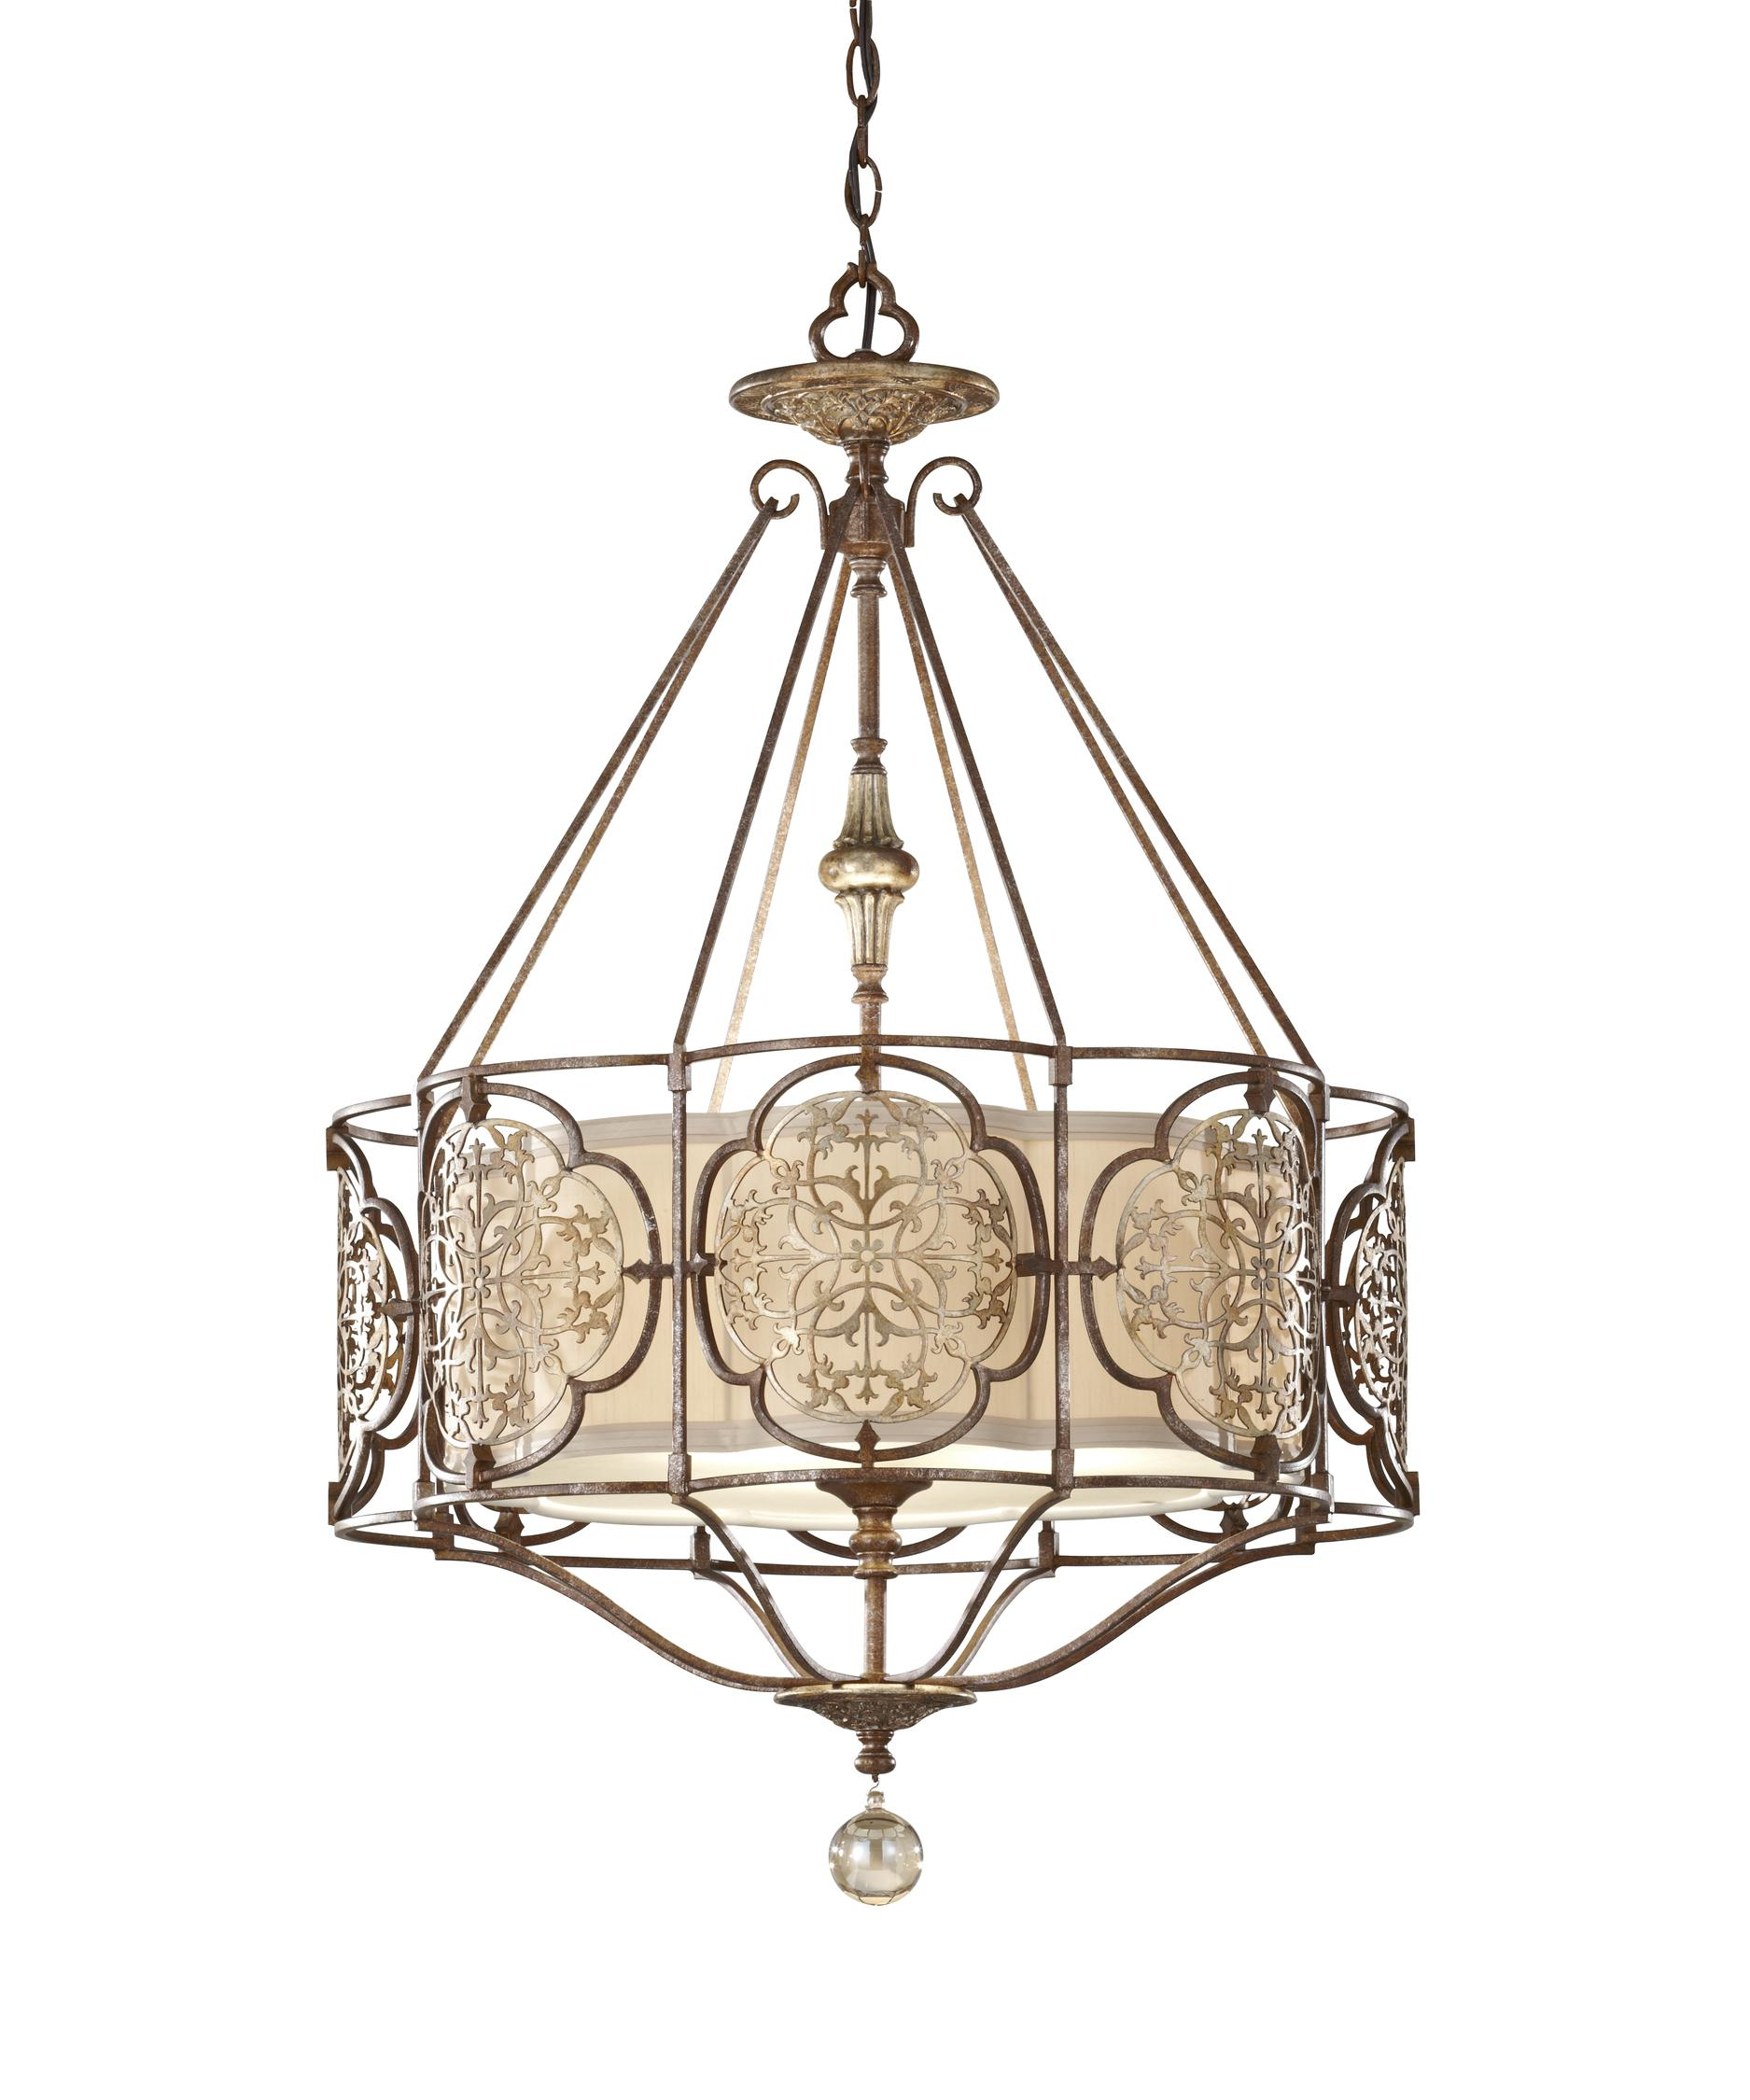 Murray Feiss F2697 3 Marcella 21 Inch Wide 3 Light Large Pendant